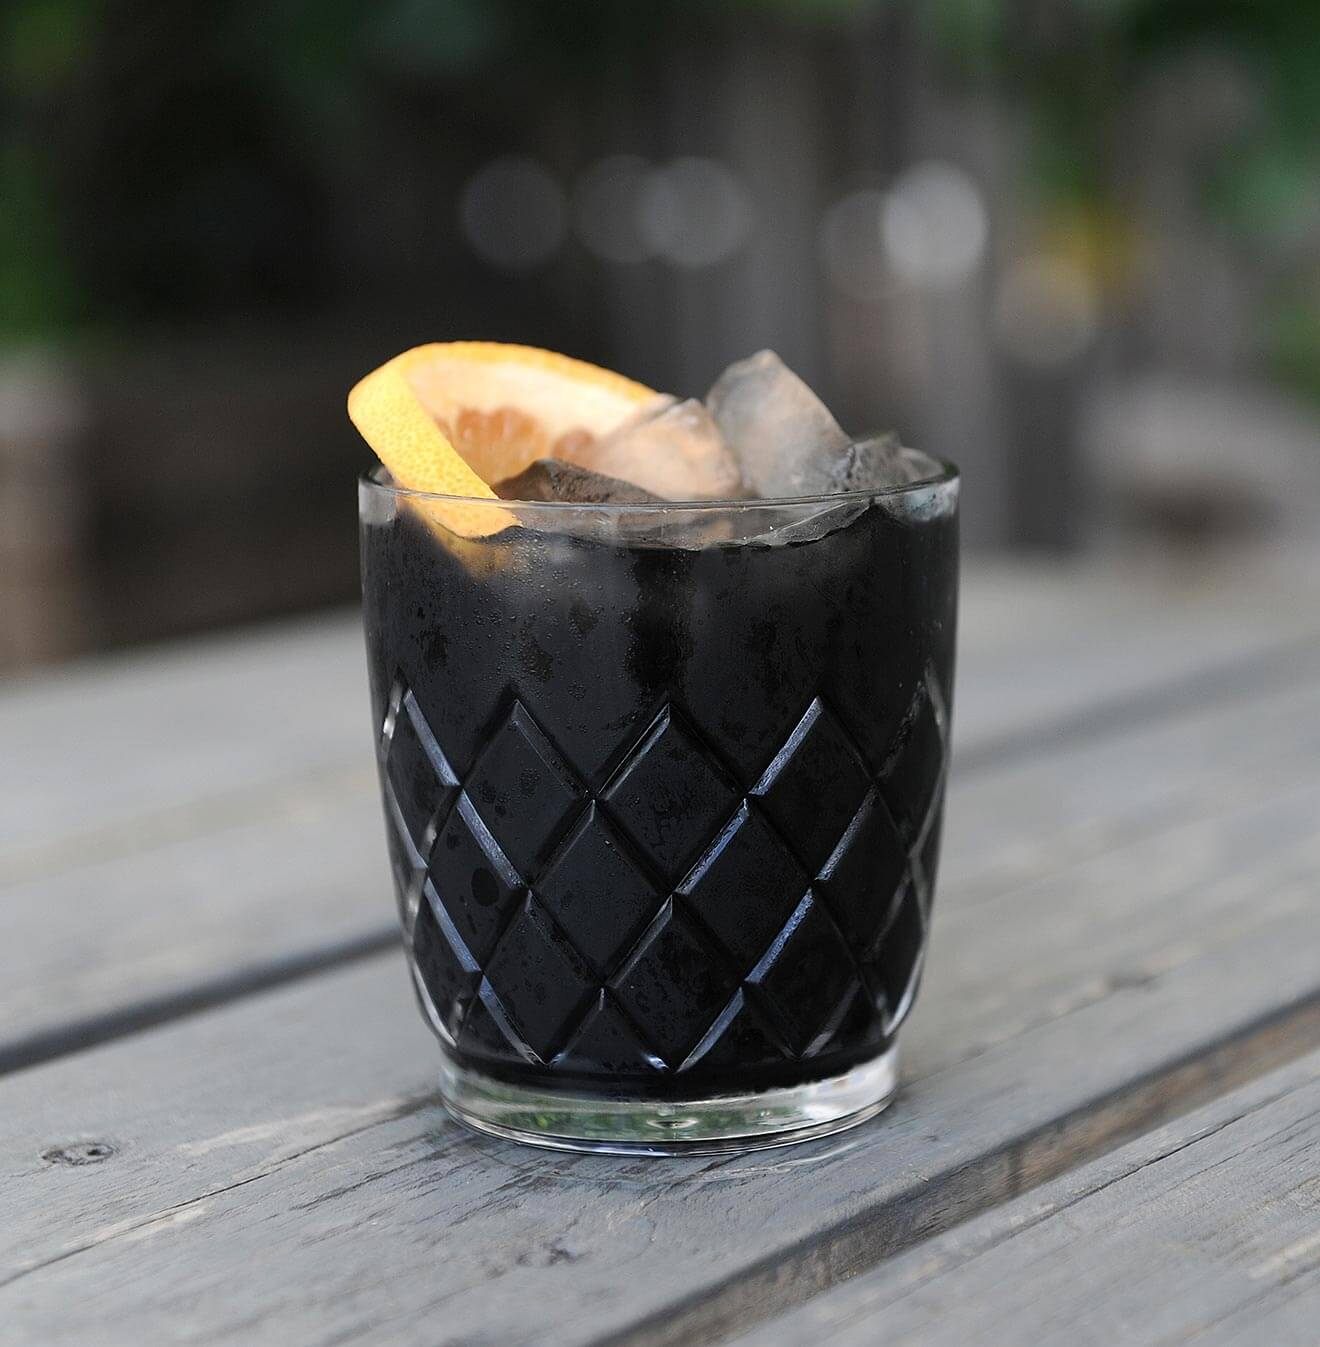 The Dark Side cocktail